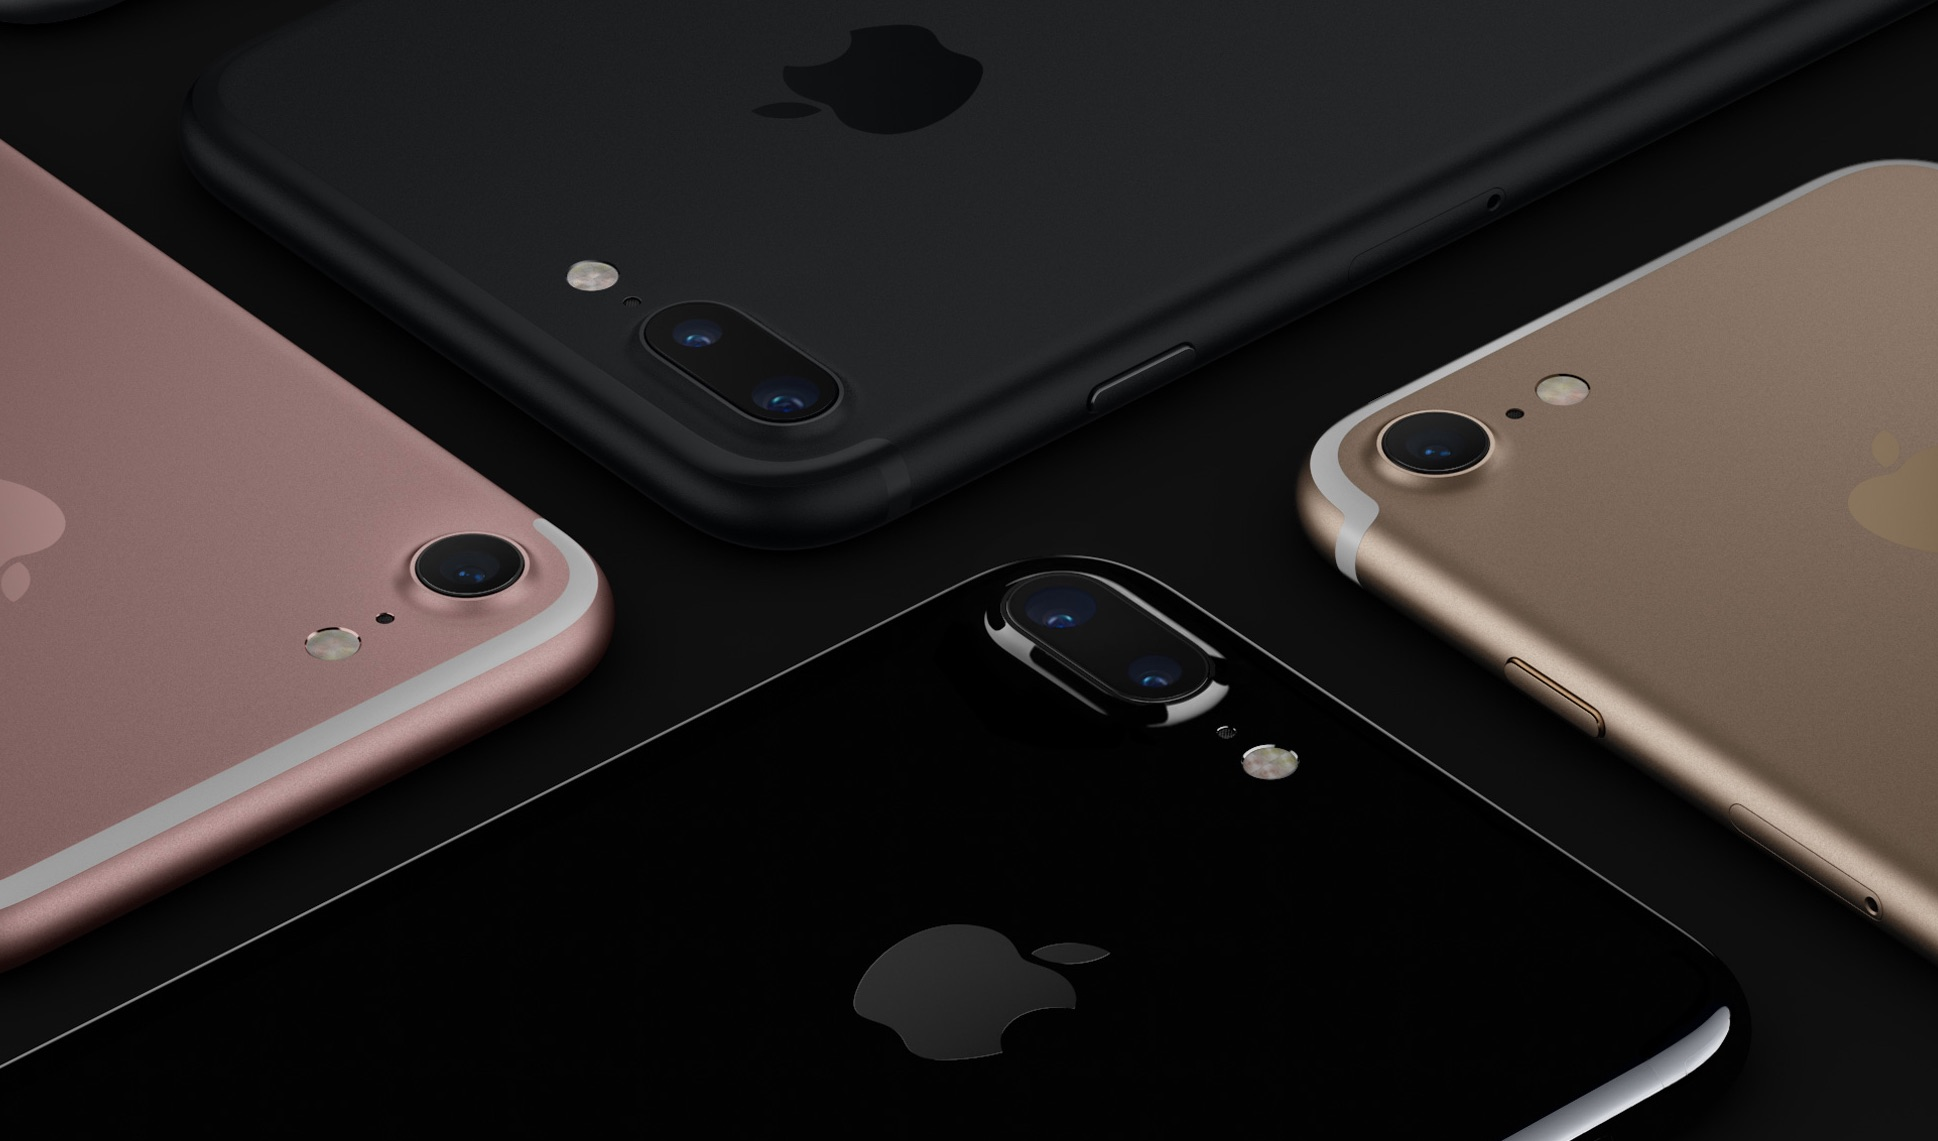 Apple iPhone 7 Black 128gb Europa a 744,99 Euro